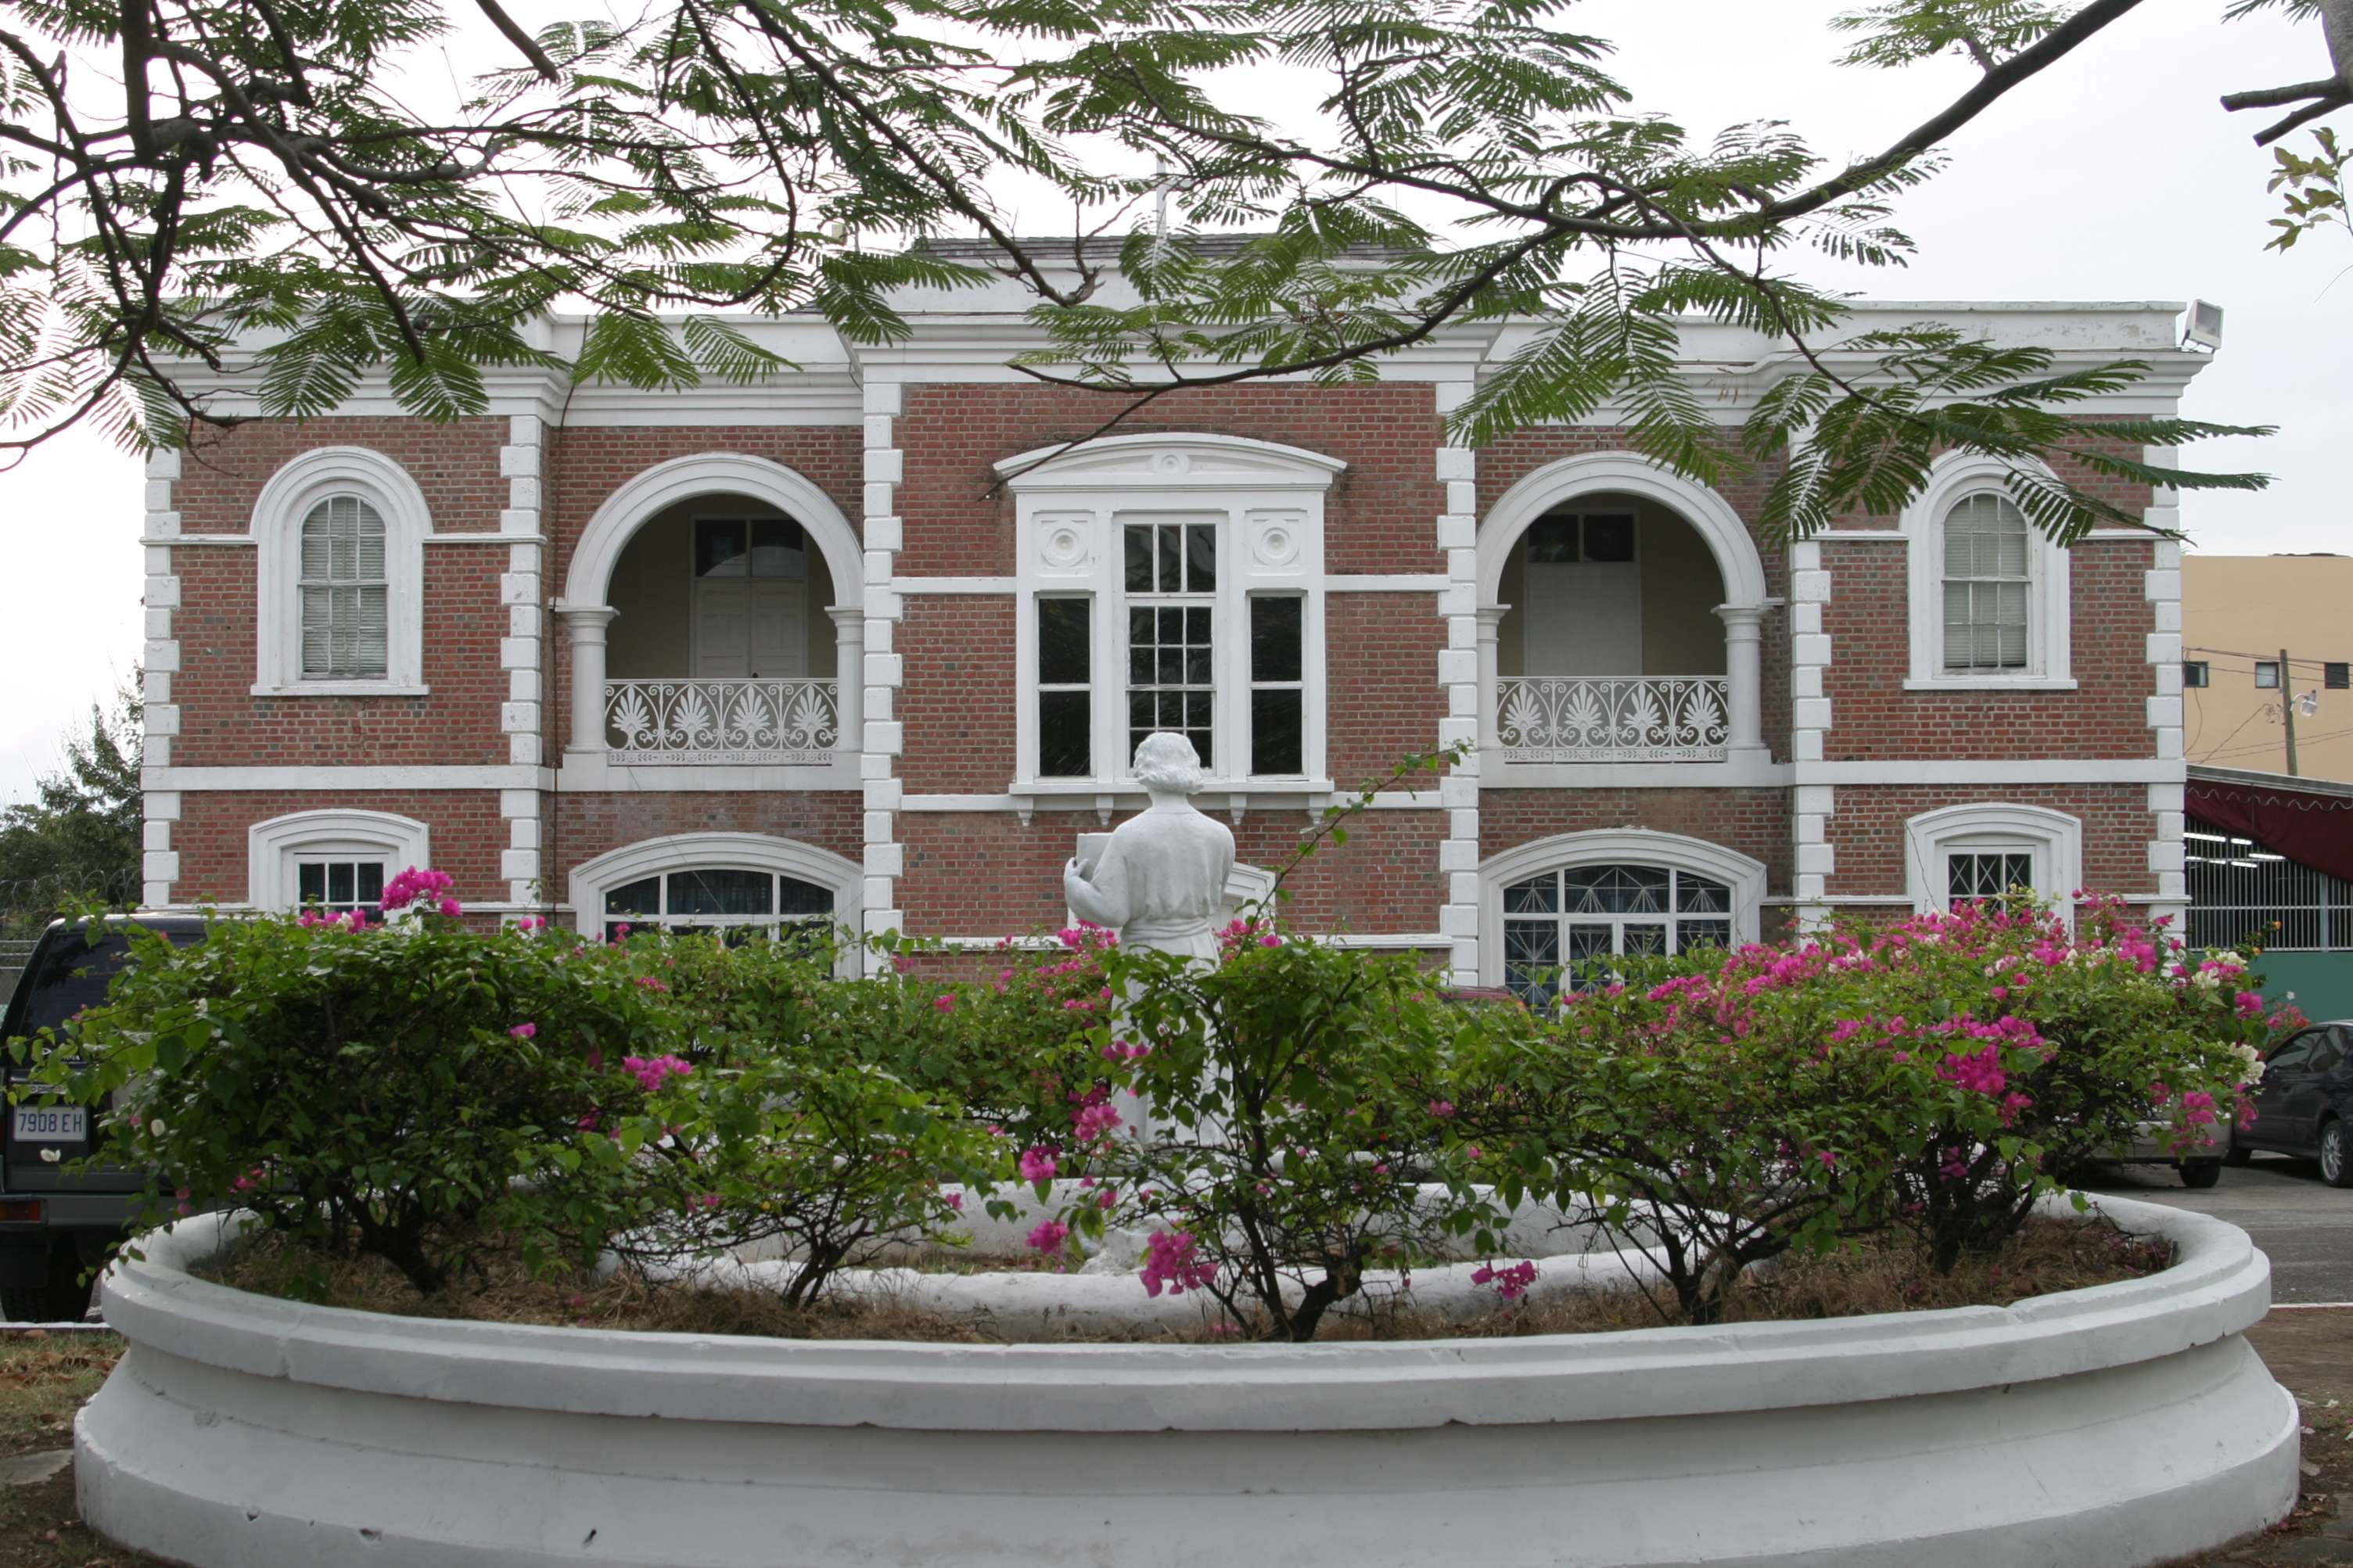 Campion College Re-Takes Top Spot on Educate Jamaica Rankings